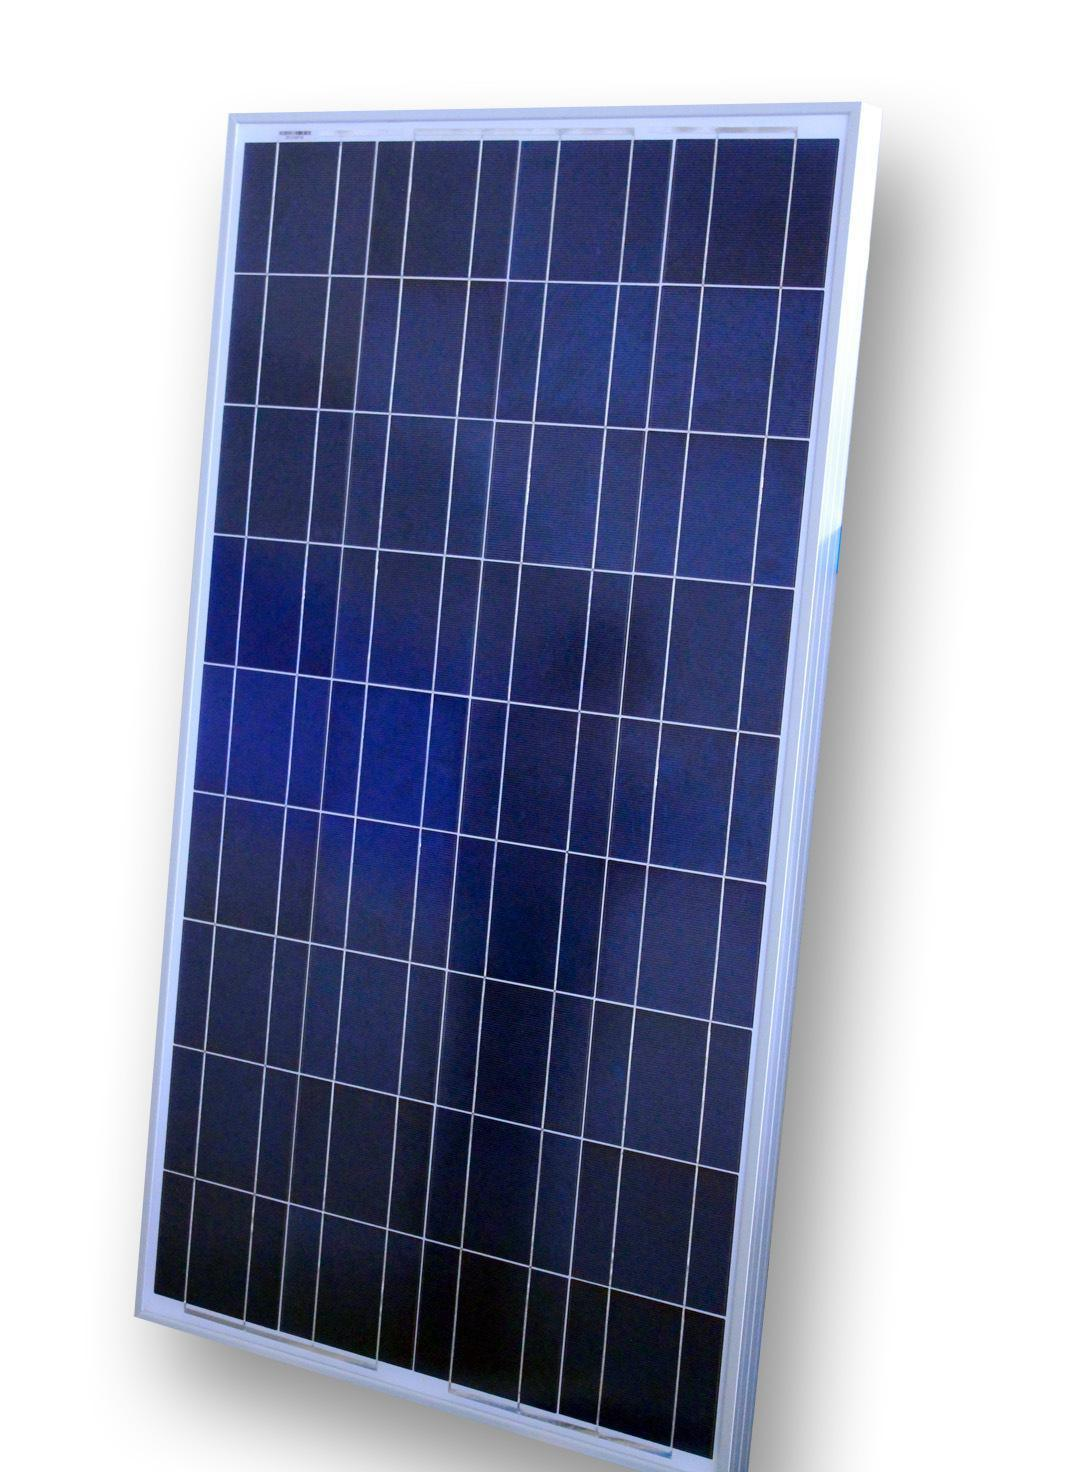 Green Energy Without Pollution Solar Panel Giving Electricity to Home and Plant Freely